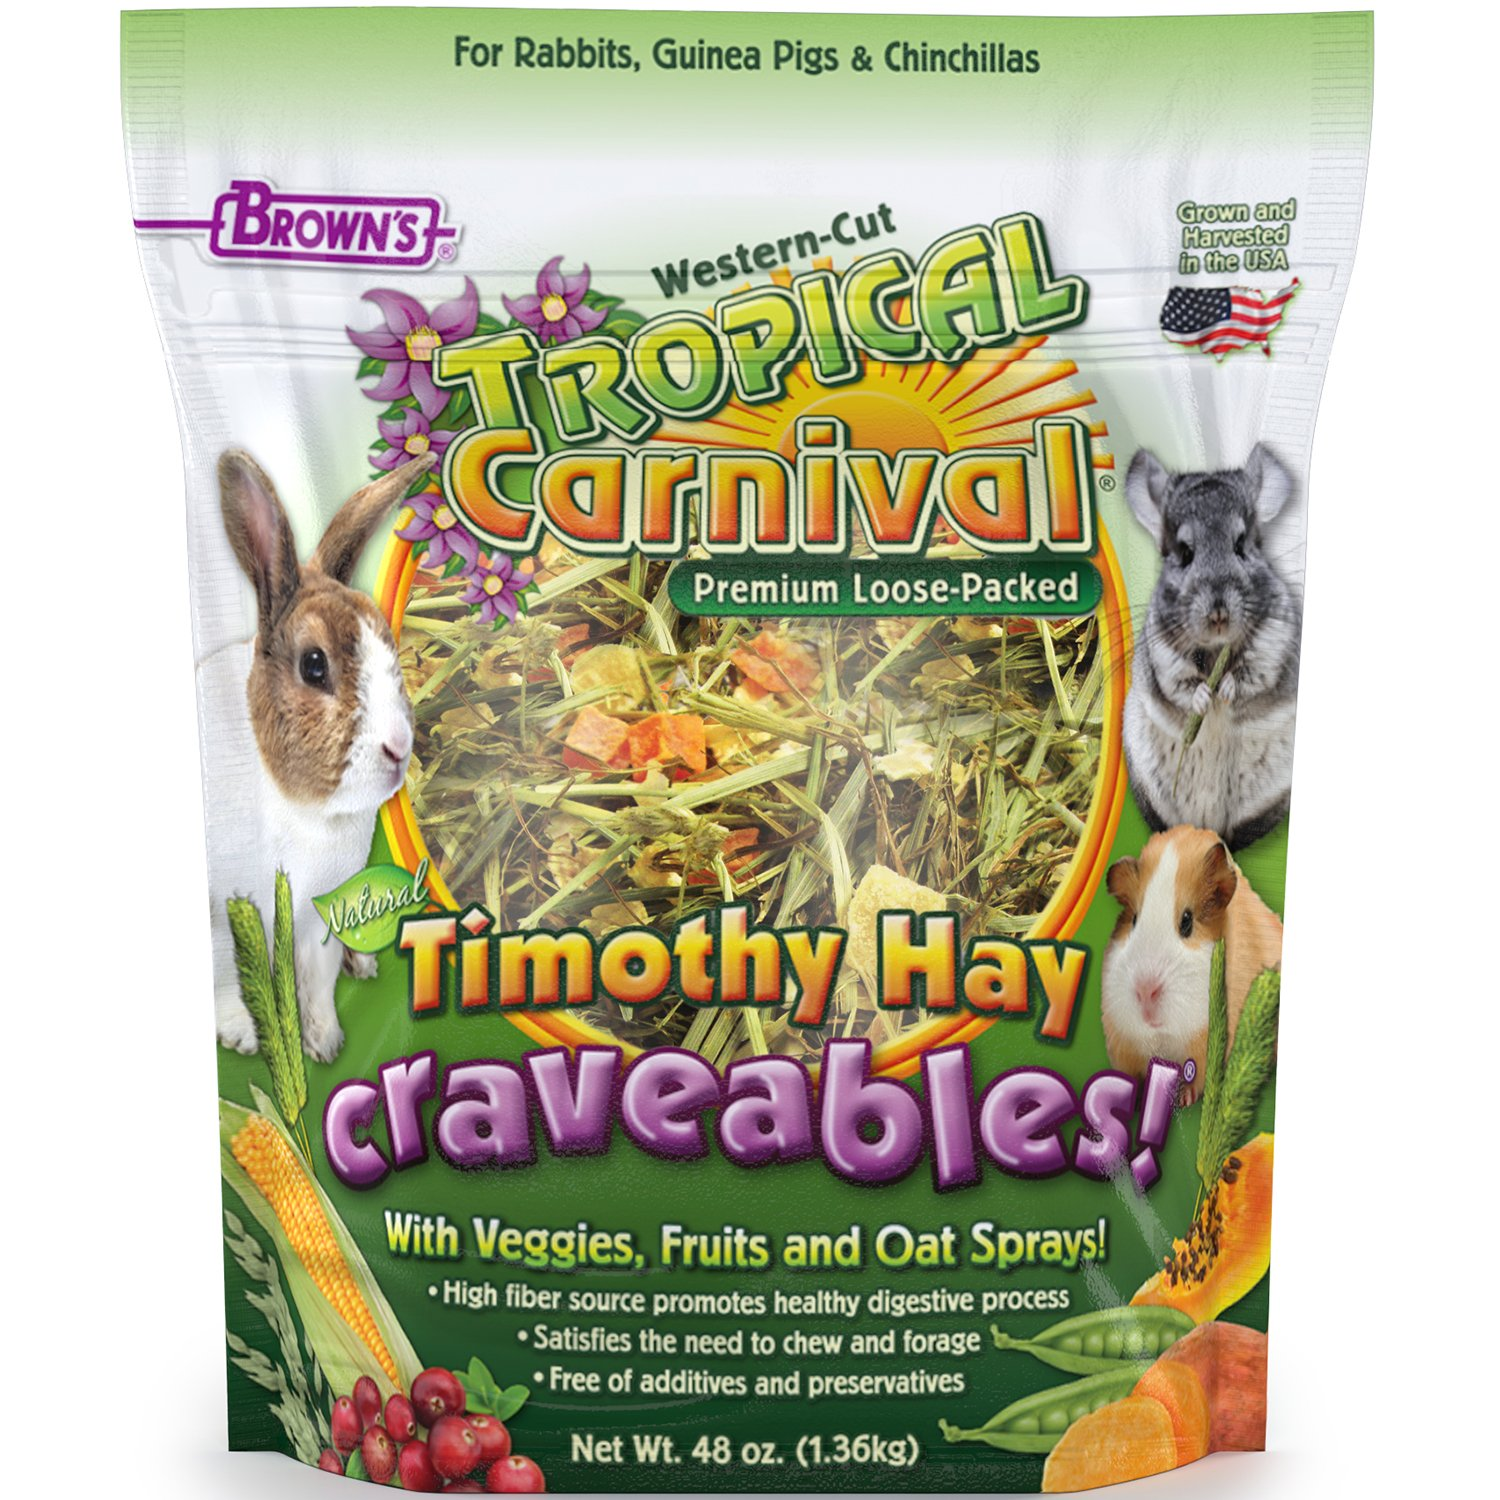 F.M. Brown's Tropical Carnival Natural Timothy Hay Craveables with Veggies, Fruits, and Oat Sprays, 48-oz Bag - Foraging Treat with High Fiber for Healthy Digestion by Tropical Carnival